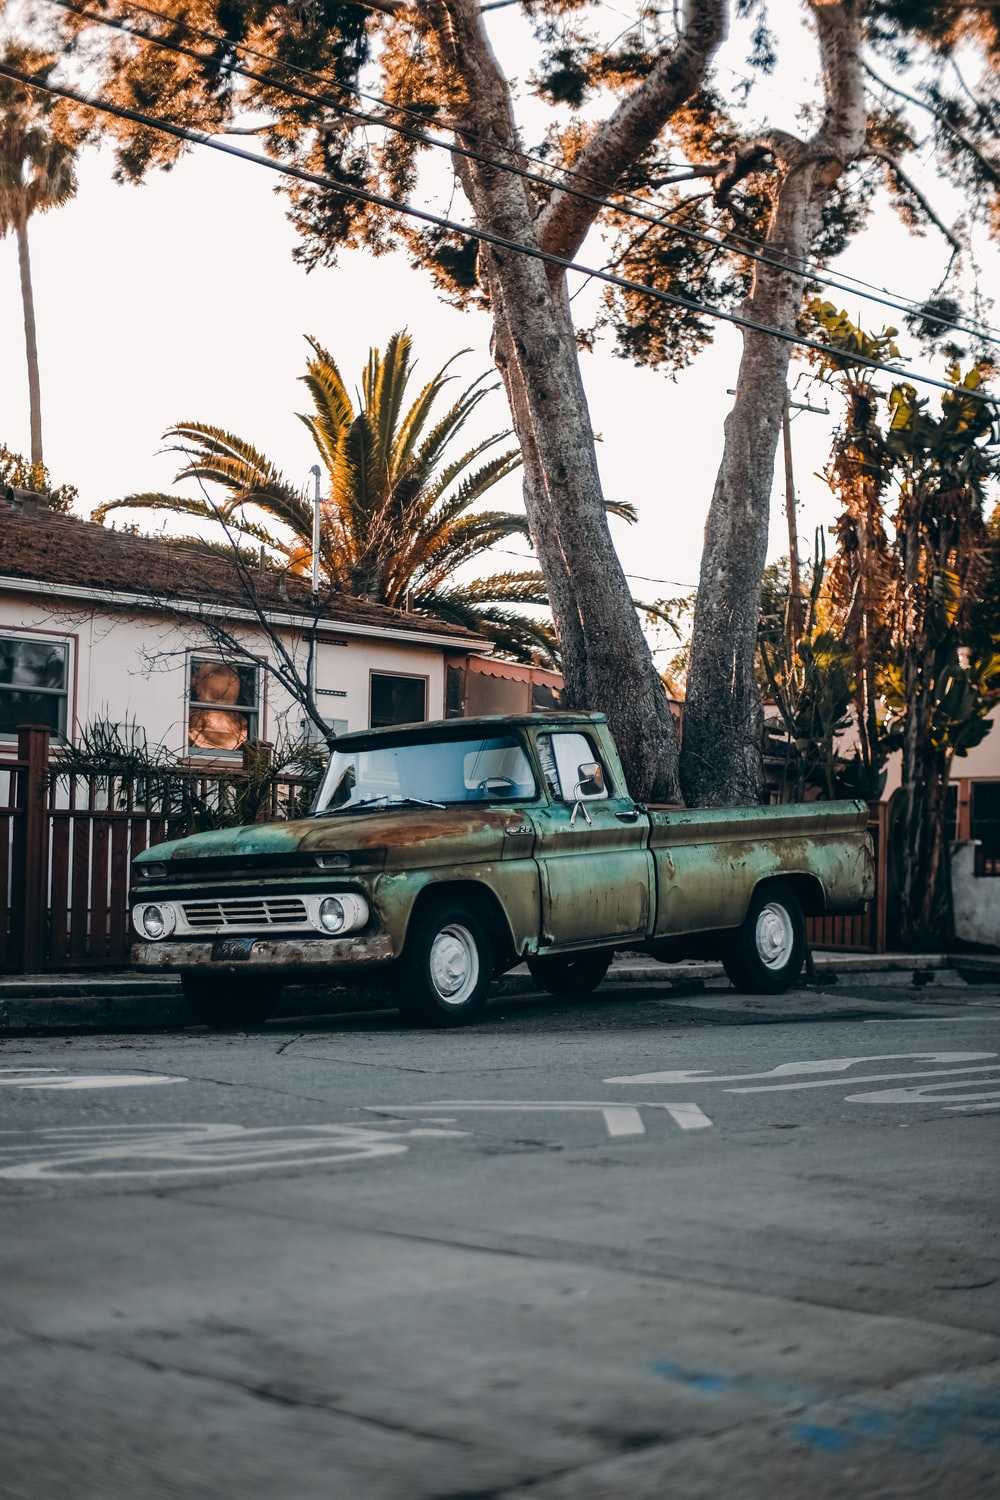 white and brown single cab pickup truck parked near brown wooden house during daytime